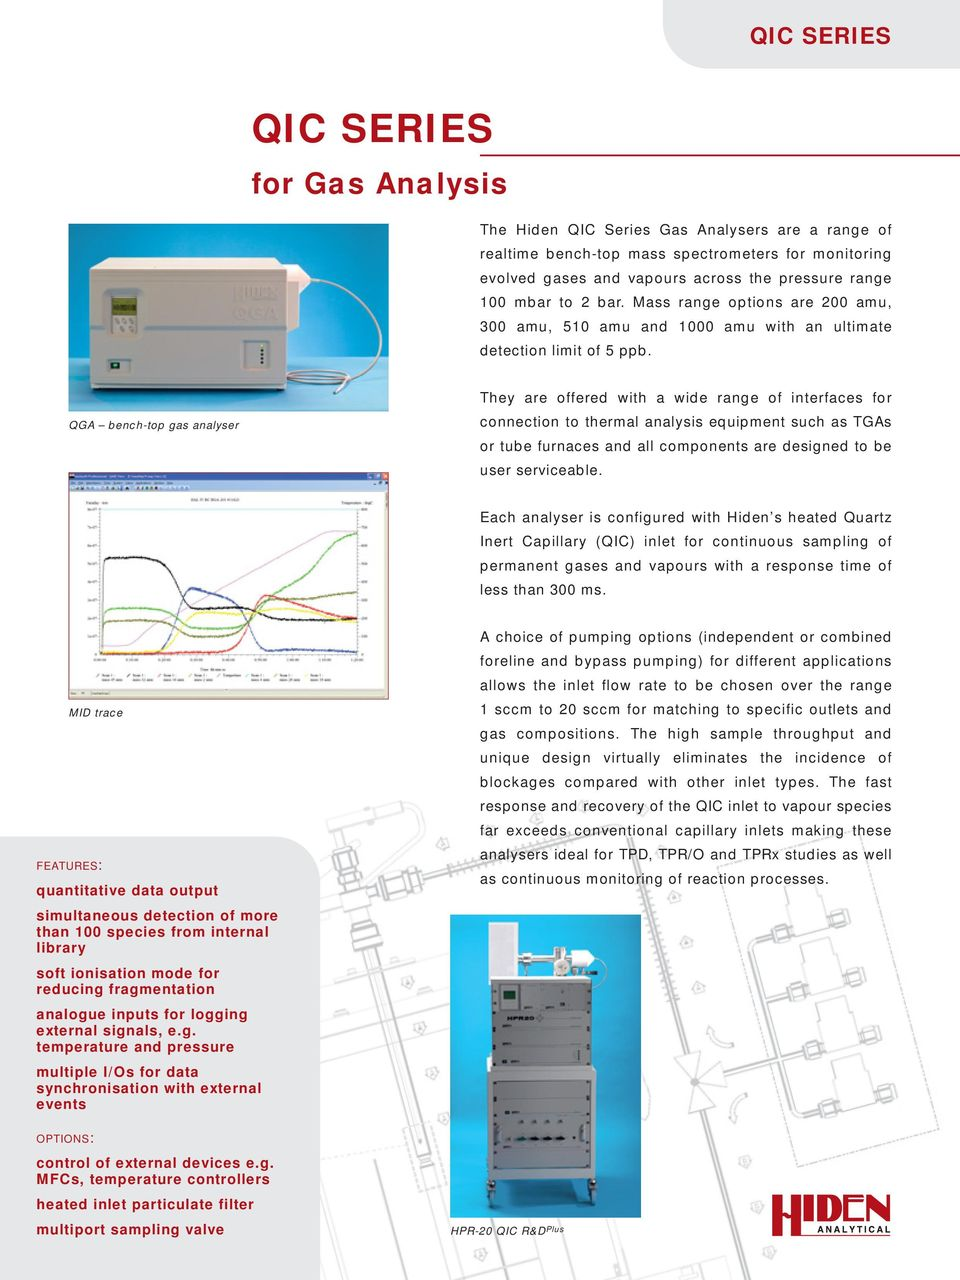 QGA bench-top gas analyser They are offered with a wide range of interfaces for connection to thermal analysis equipment such as TGAs or tube furnaces and all components are designed to be user